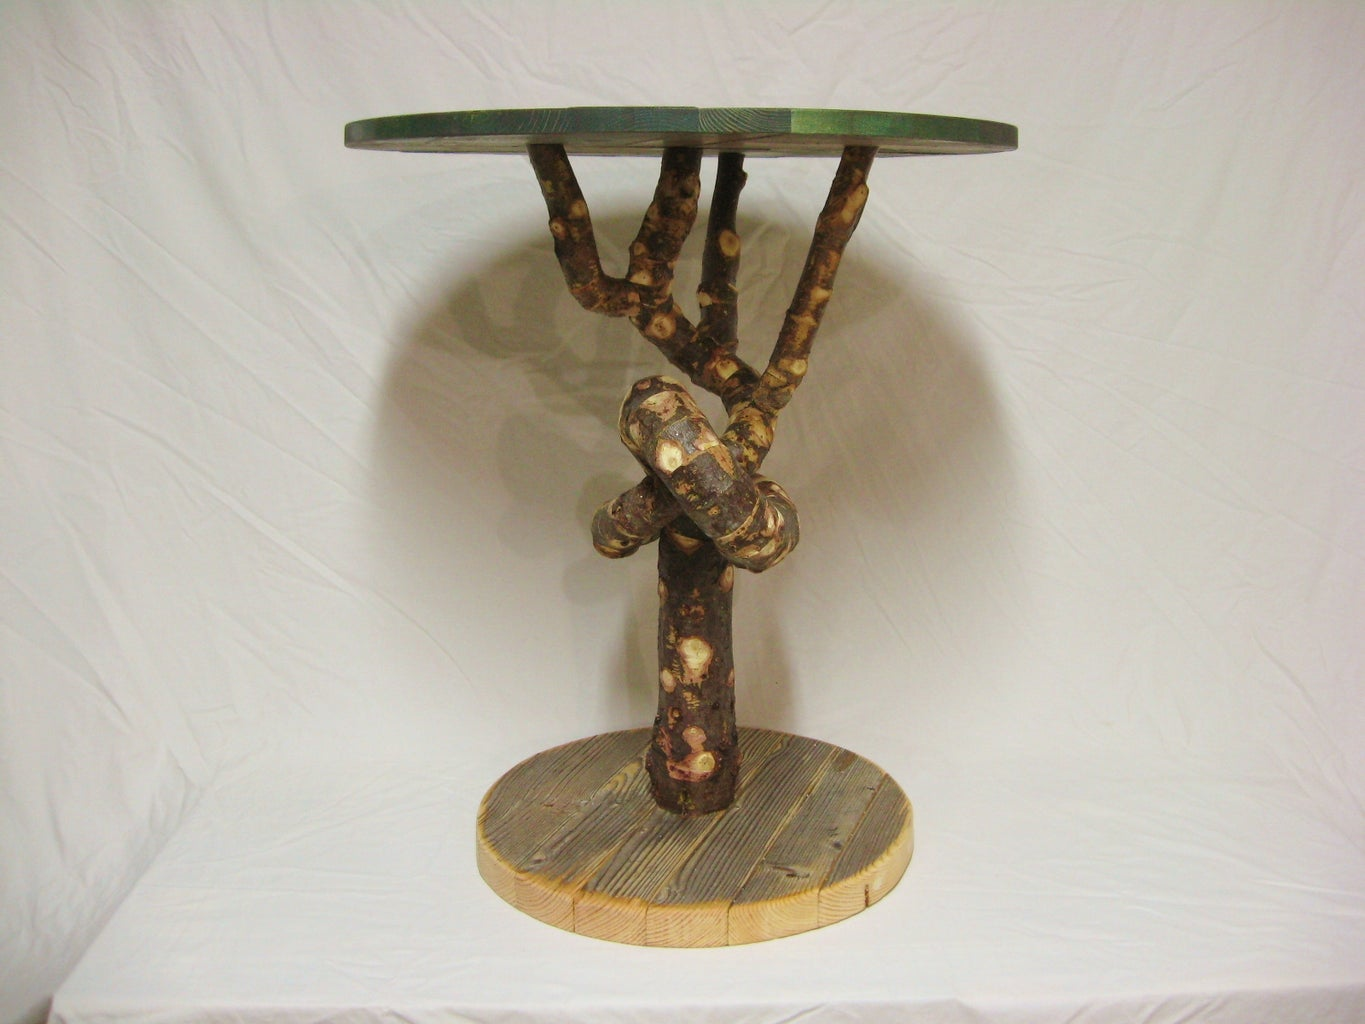 Knotted Tree Table (from Old Christmas Trees)